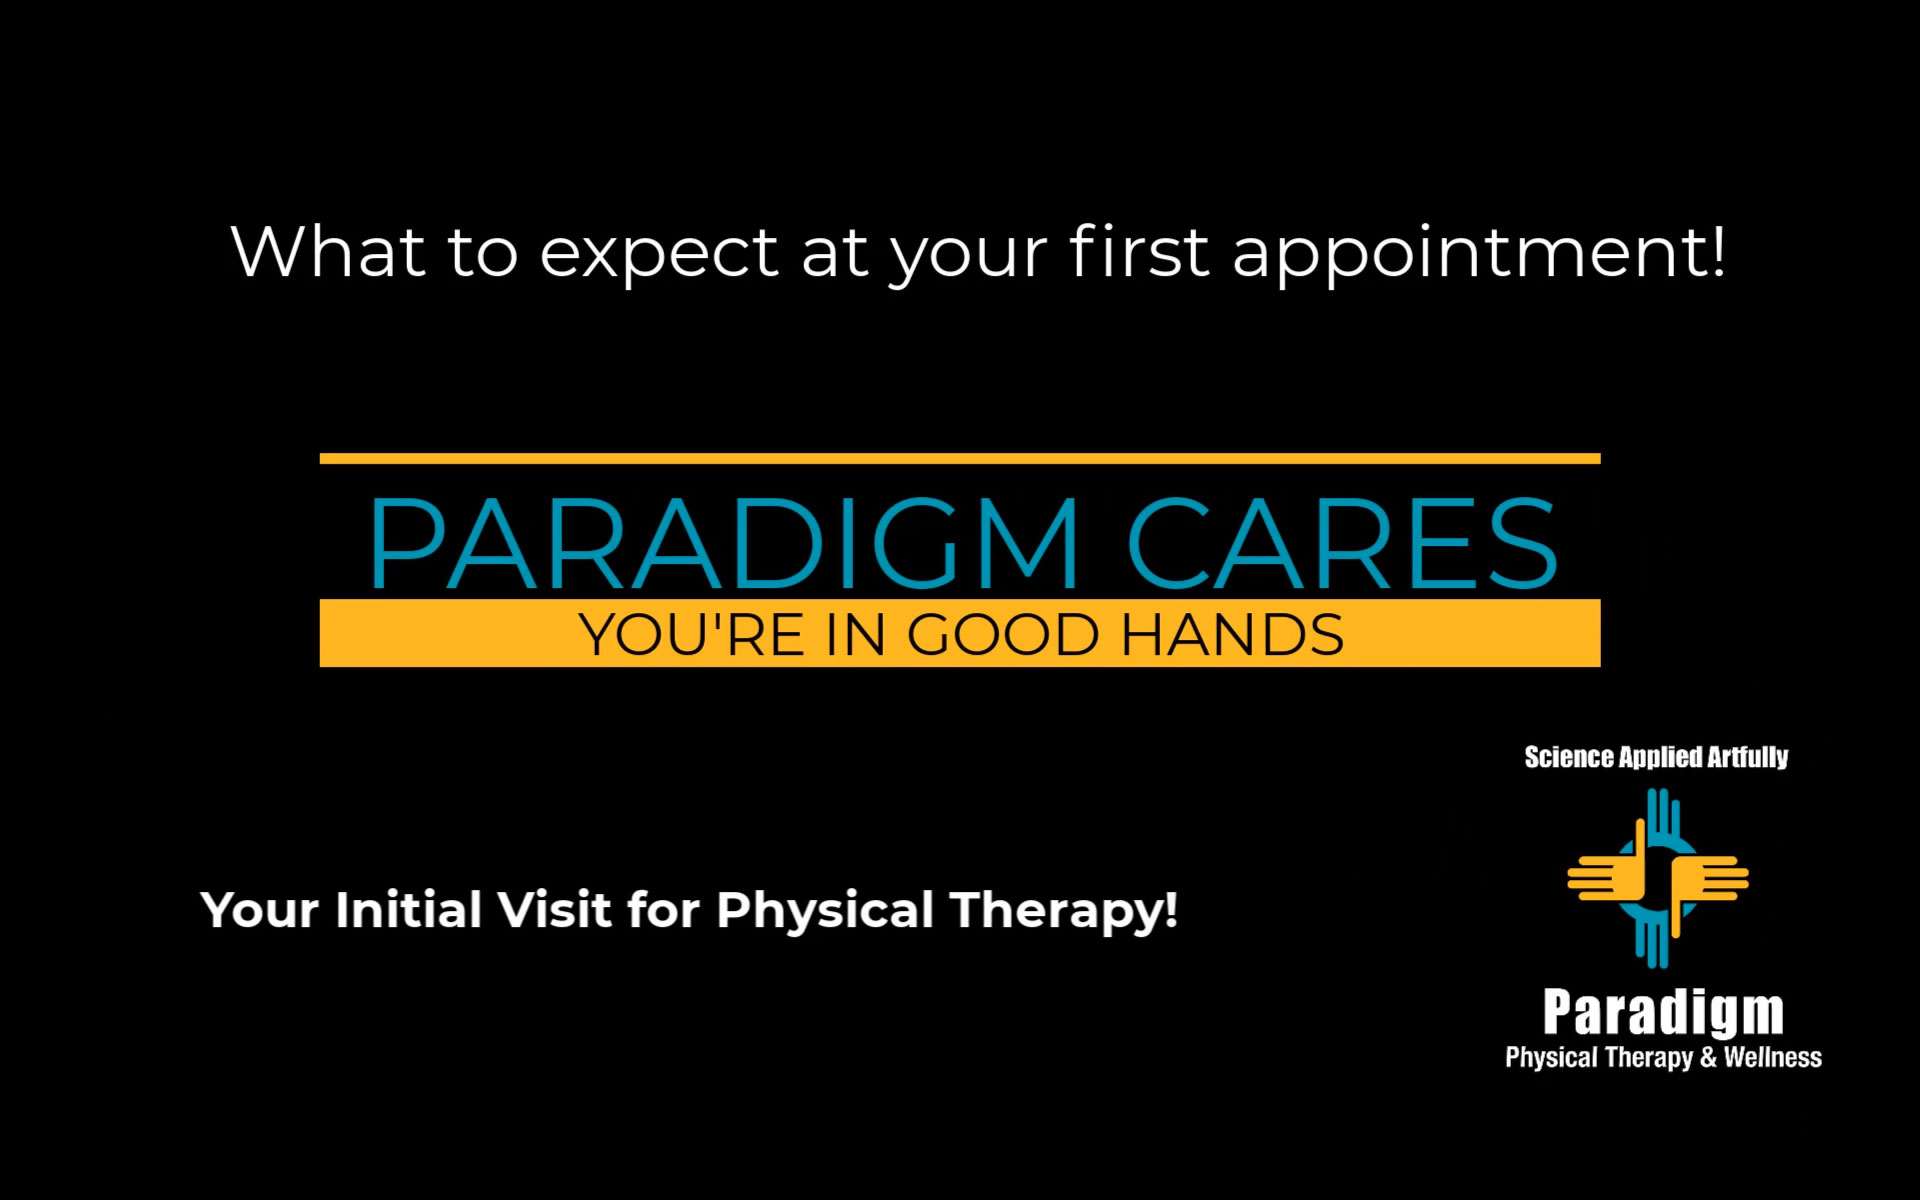 Do you know what to expect when you attend your initial visit to physical therapy?